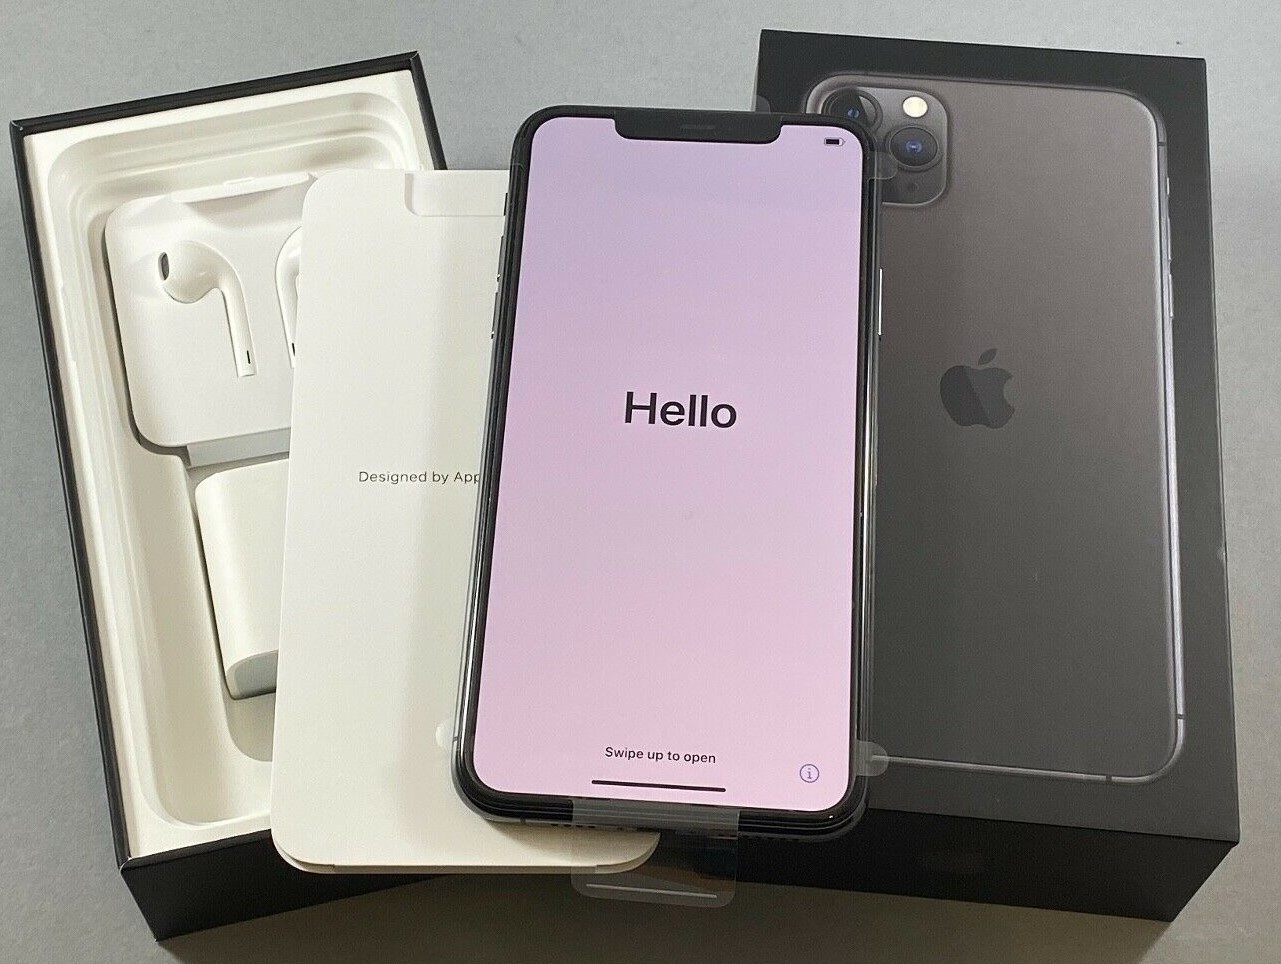 APPLE IPHONE 11 PRO 64GB  ΚΟΣΤΟΣ 500 EUR, APPLE IPHONE 11 PRO MAX 64GB ΚΟΣΤΟΣ 530 EUR, Apple iPhone 11  64GB ΚΟΣΤΟΣ  400 EUR , APPLE IPHONE XS 64GB ΚΟΣΤΟΣ 350 EUR,  APPLE IPHONE XS MAX 64GB ΚΟΣΤΟΣ 370 EUR , WHATSAPP CHAT : +27837724253